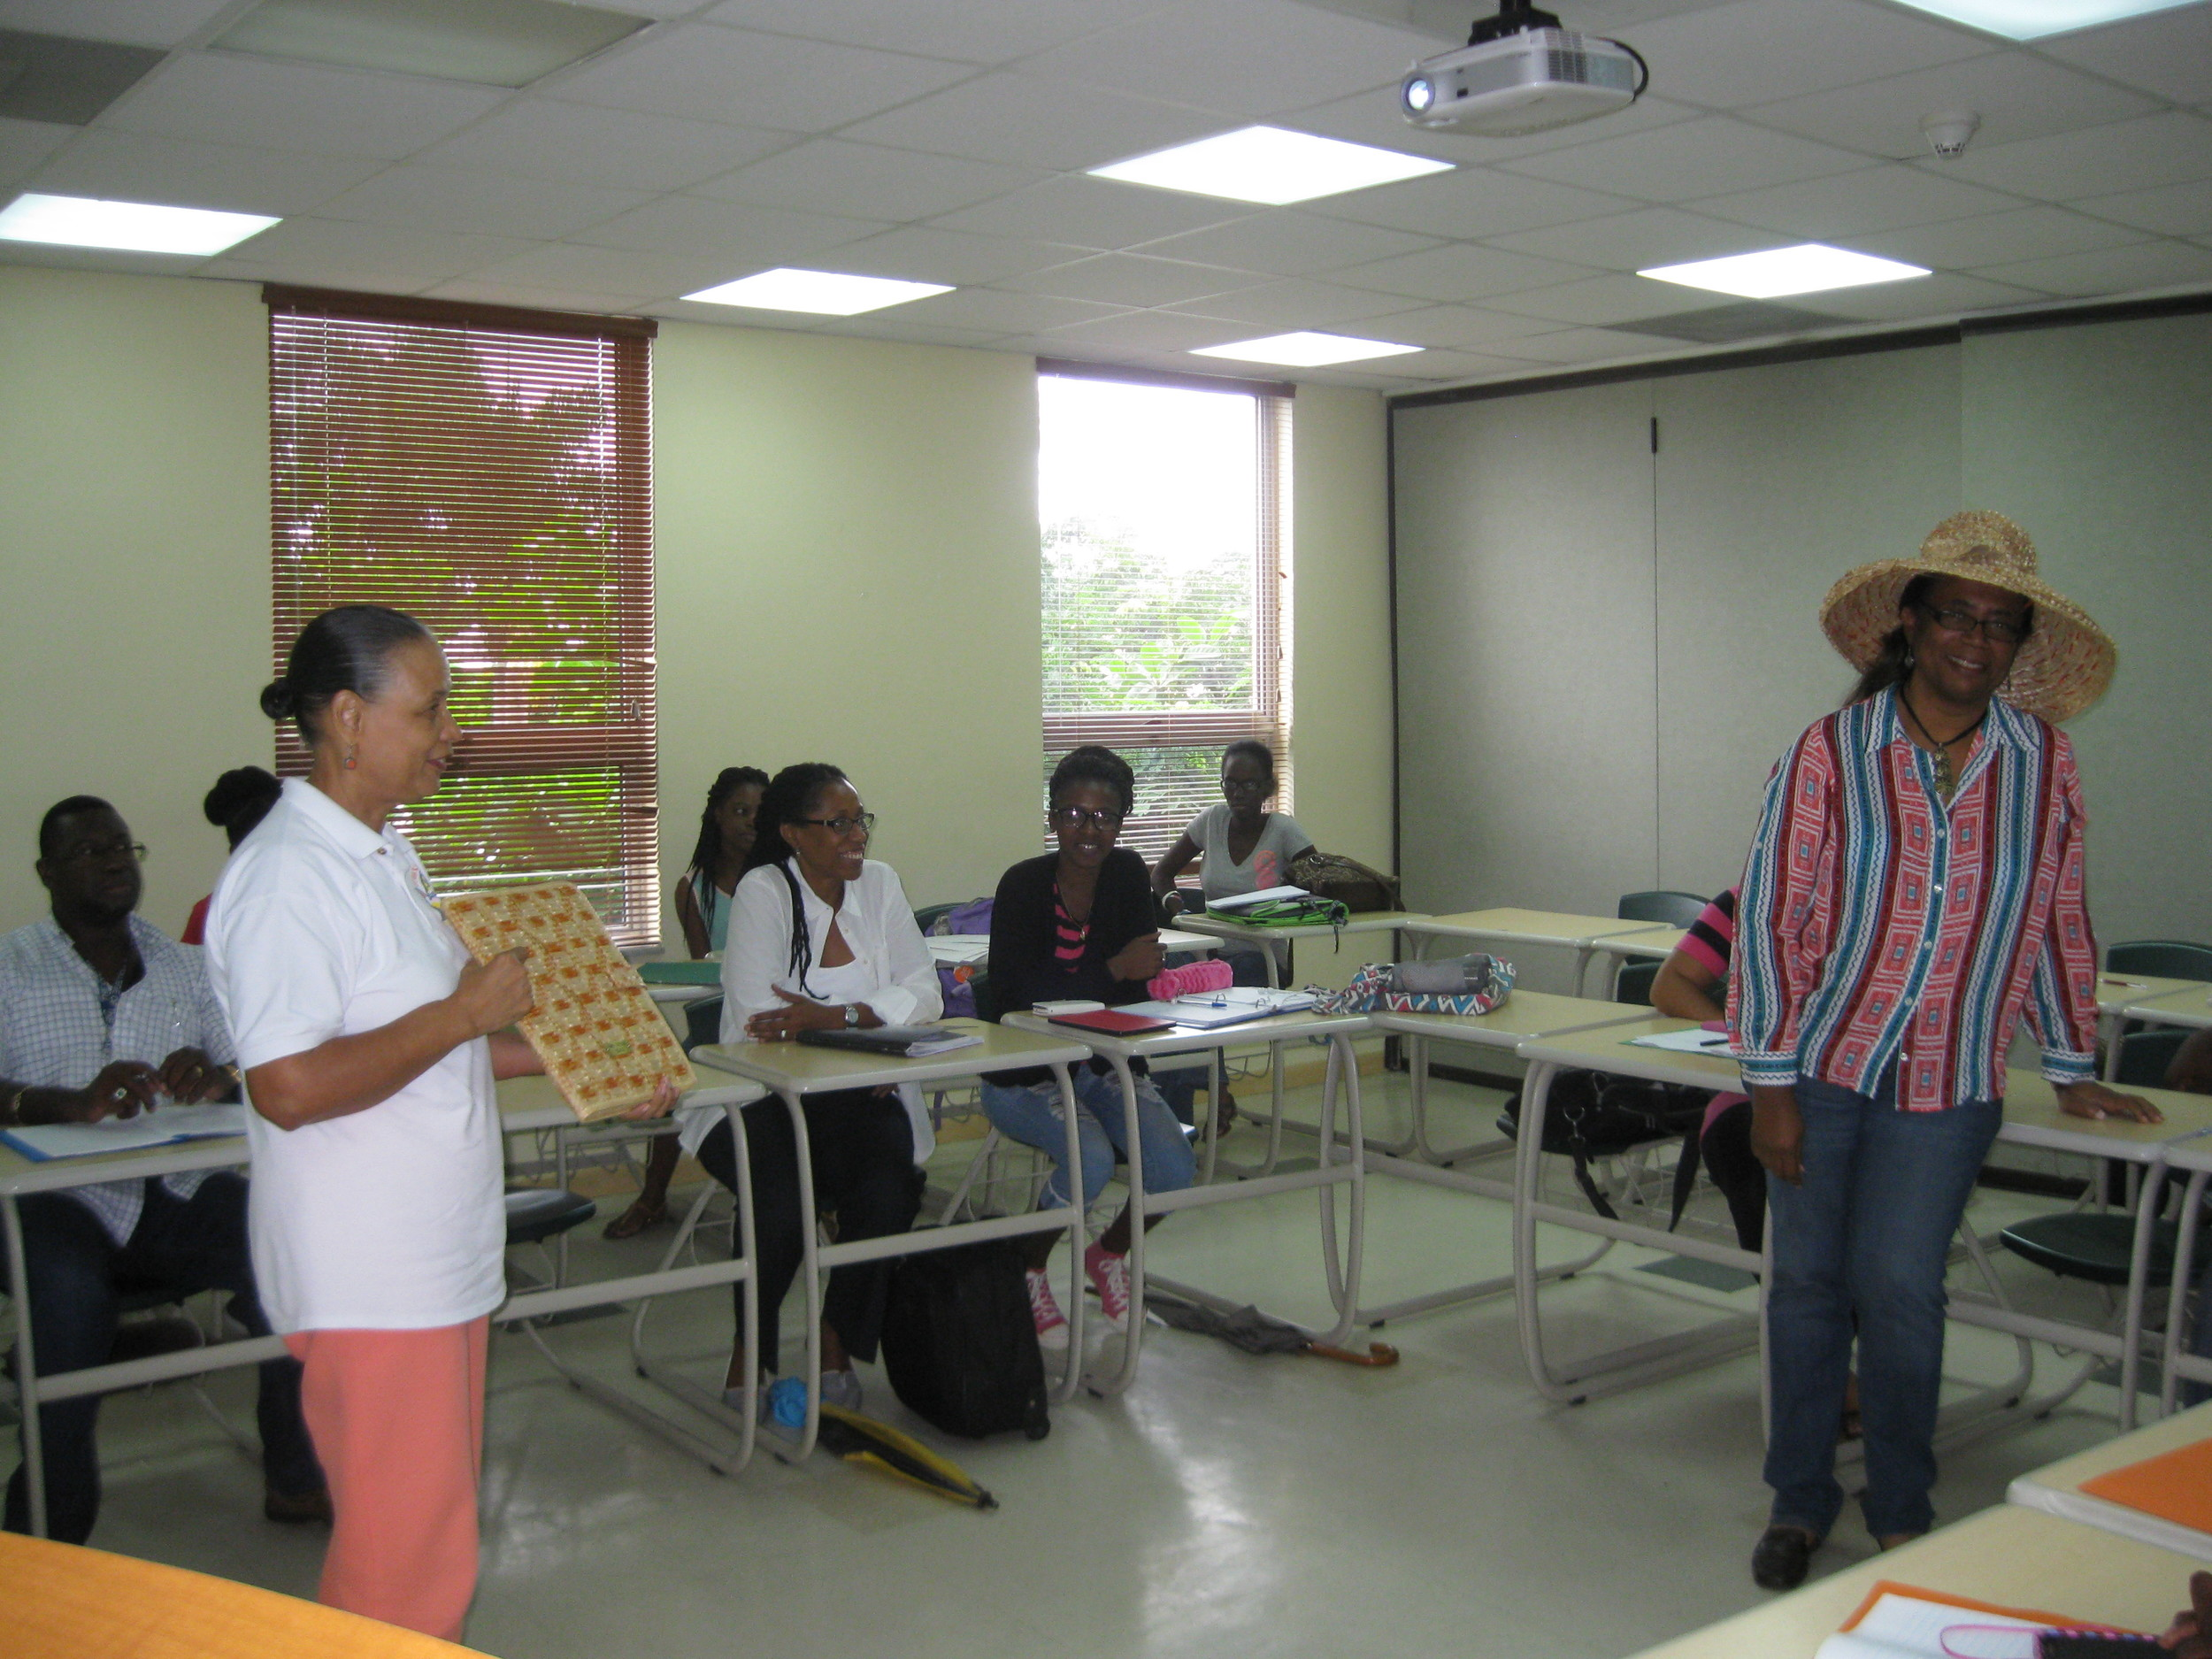 The students were shown examples of Bahamian straw products